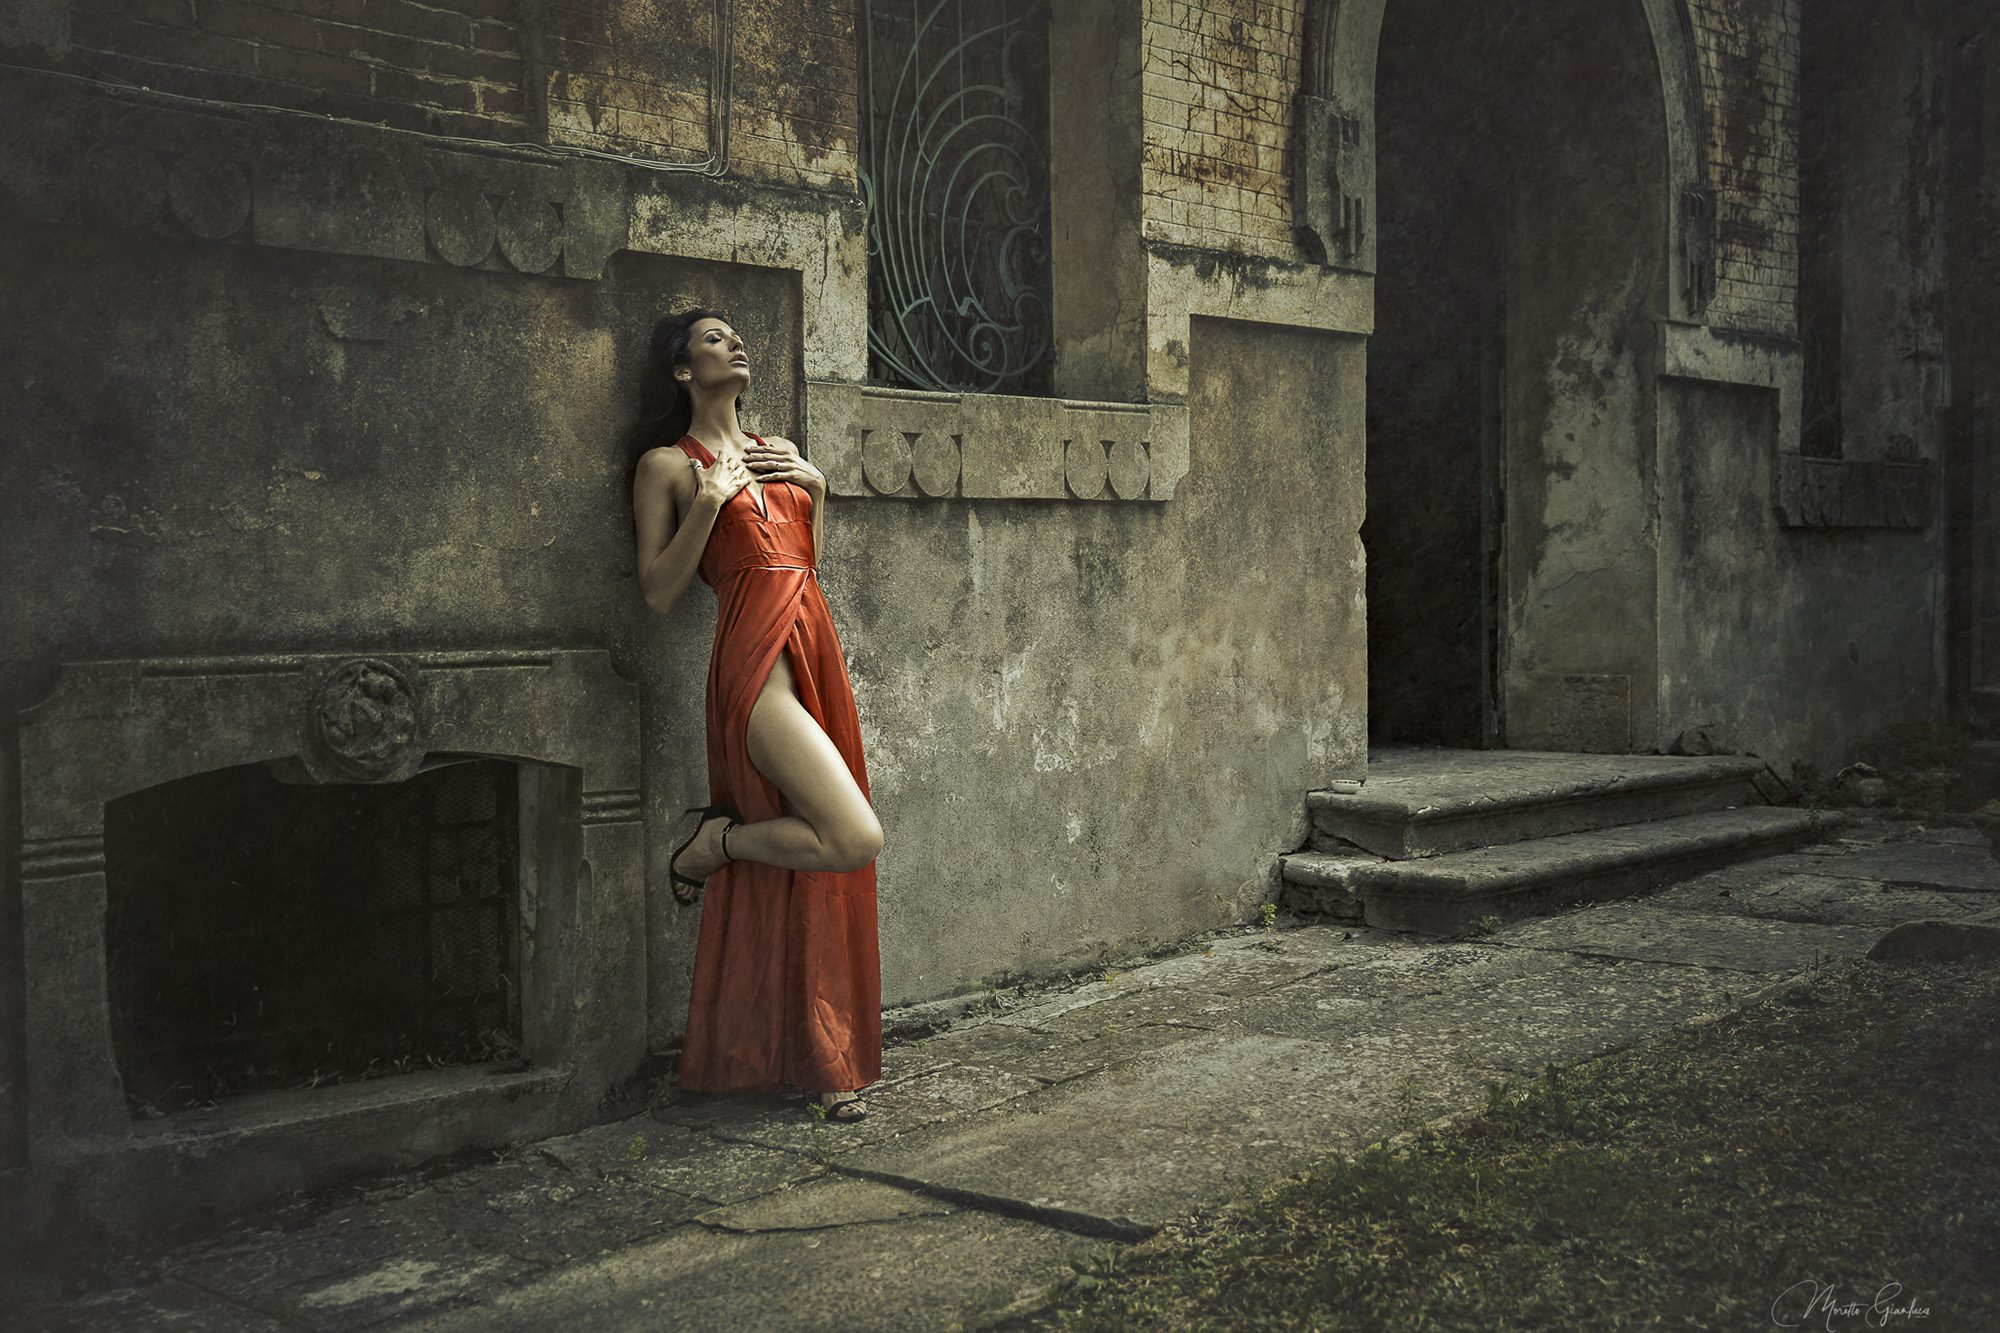 VENUS Gallery - Gianluca Moretto Photography